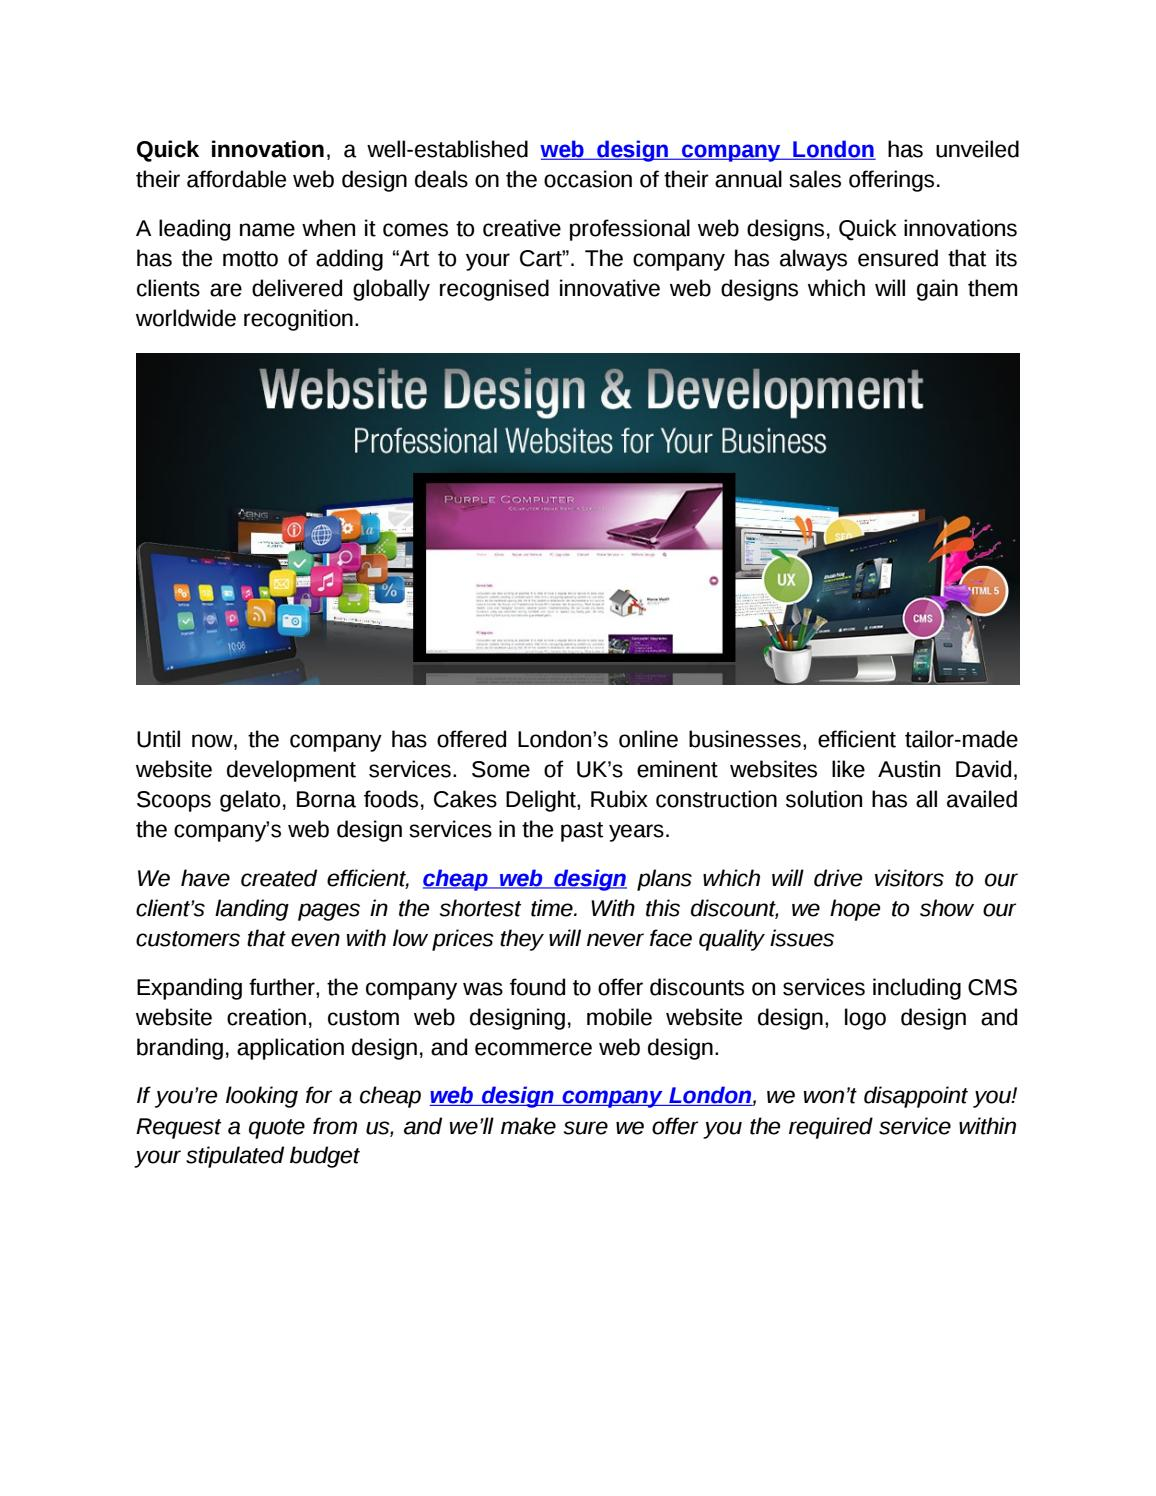 Web Design Company London By Quickinnovations Issuu